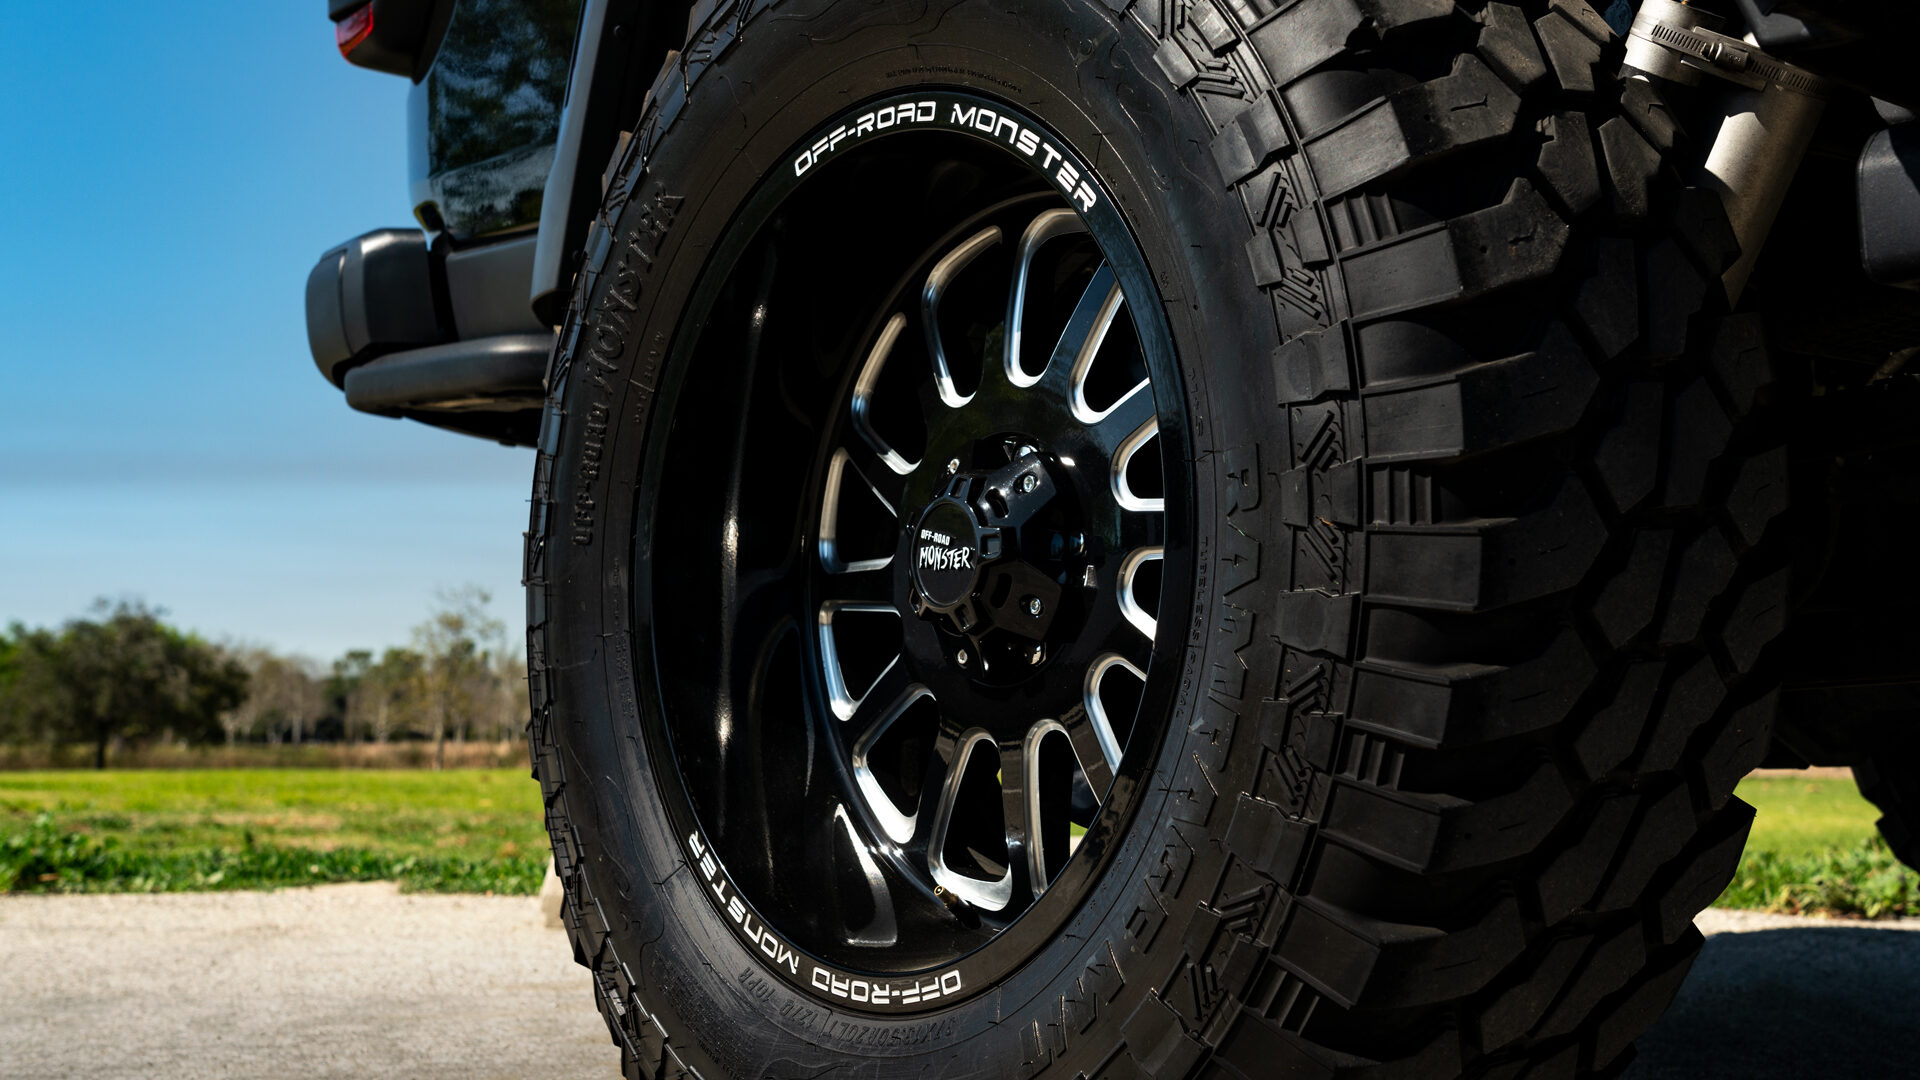 M17 Off-Road Monster Wheels 20x10 | Jeep Gladiator